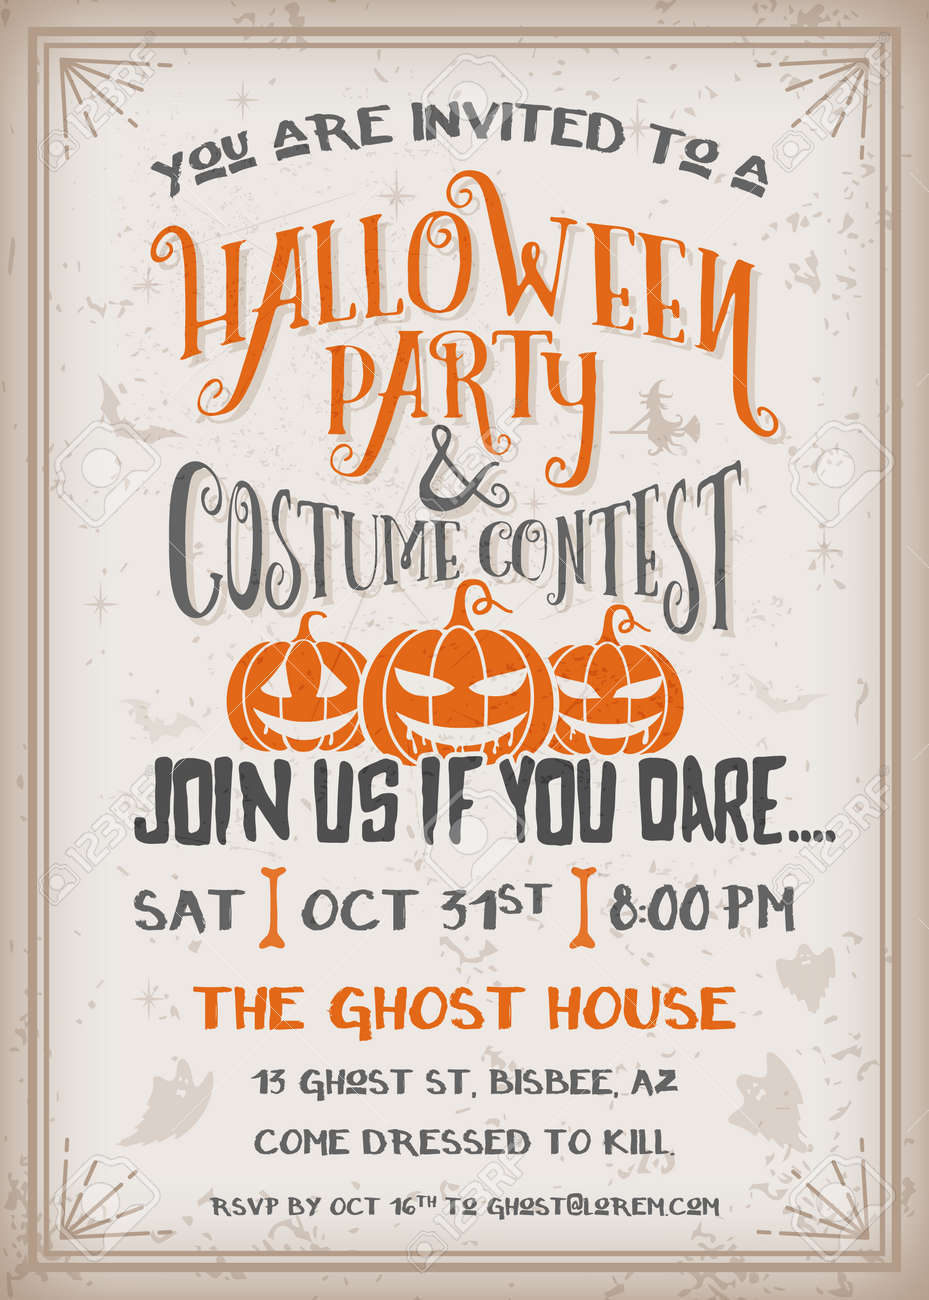 Halloween Party And Costume Contest Invitation With Scary Pumpkins Design Grunge Texture Easy To Remove